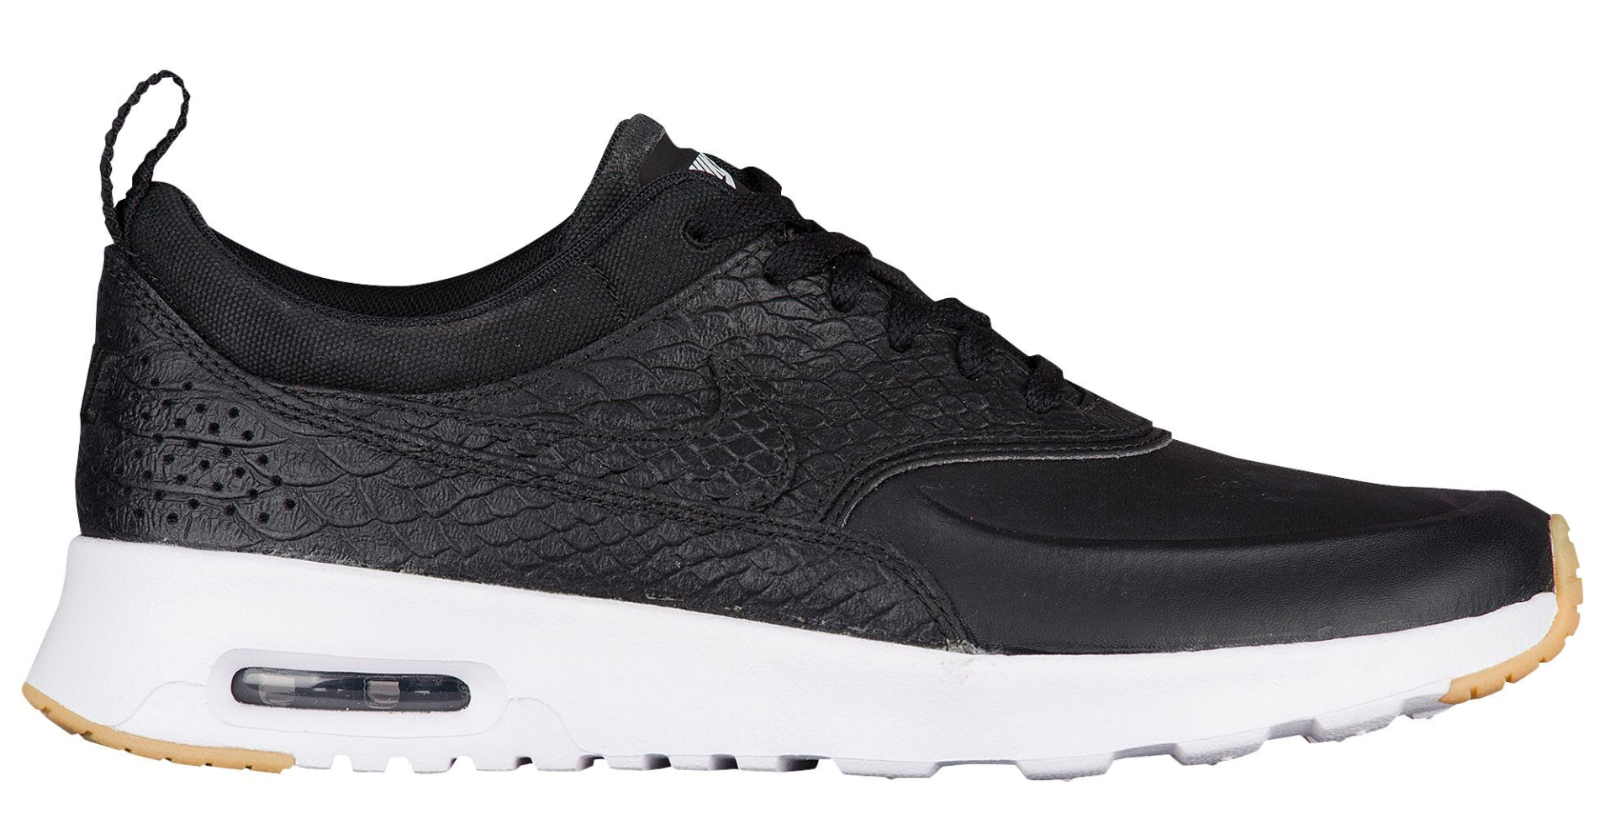 NEW femmes Nike Air Max Thea Chaussures Size: 5.5 Color: Noir / blanc